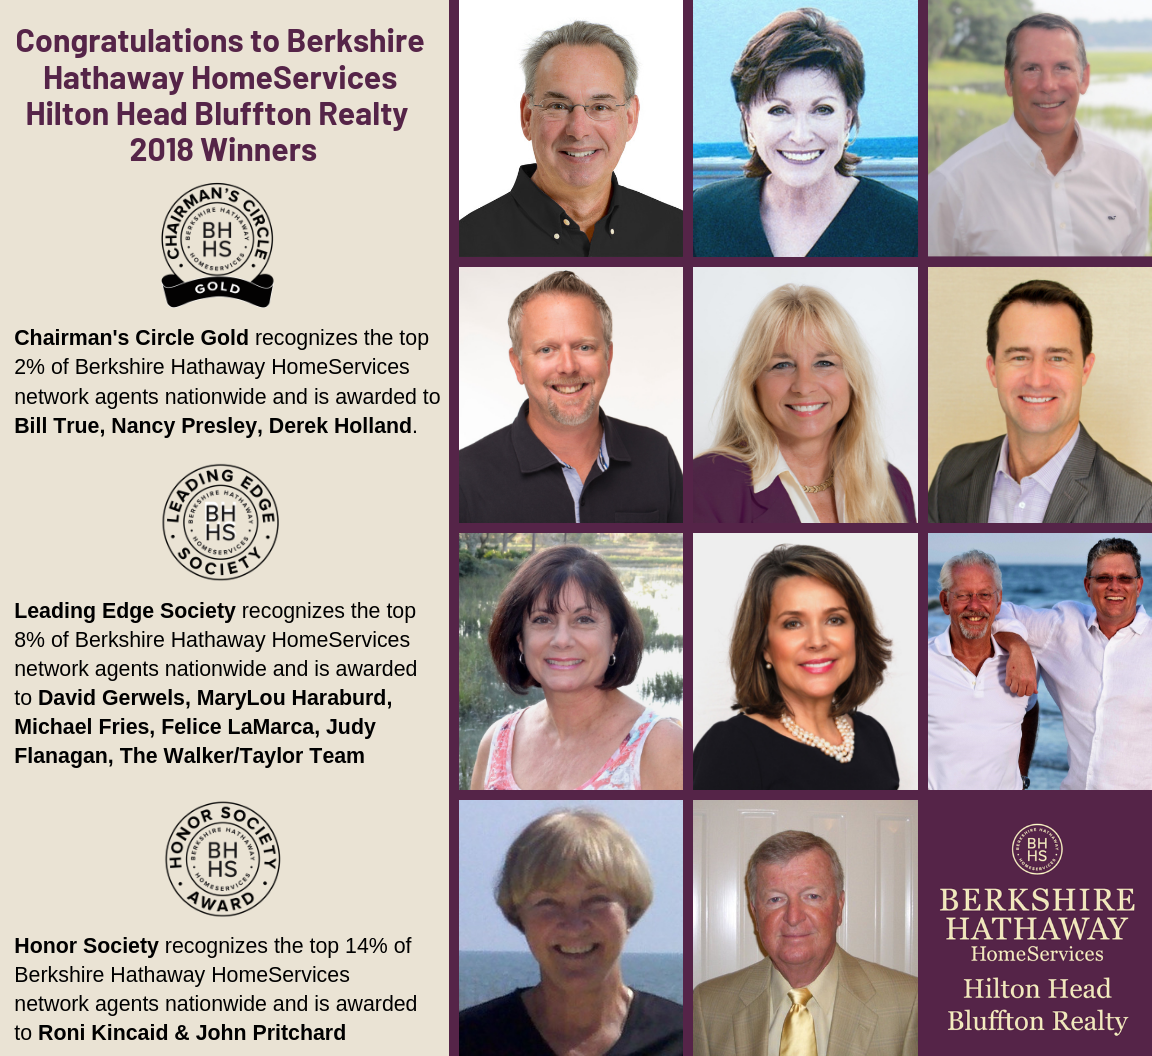 Berkshire Hathaway HomeServices Hilton Head Bluffton Realty Winners